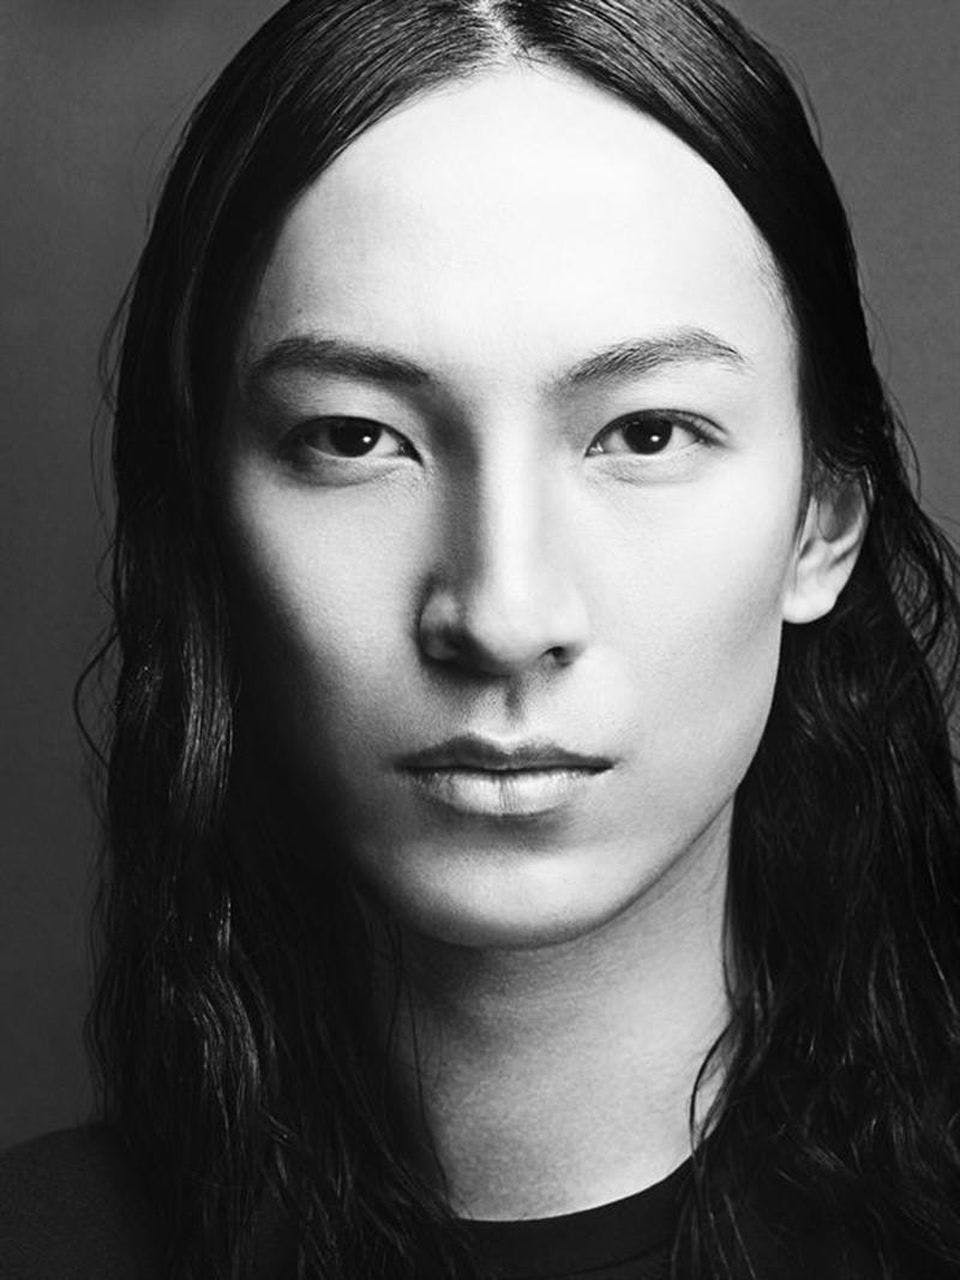 Alexander Wang Black And White Portrait Photograph